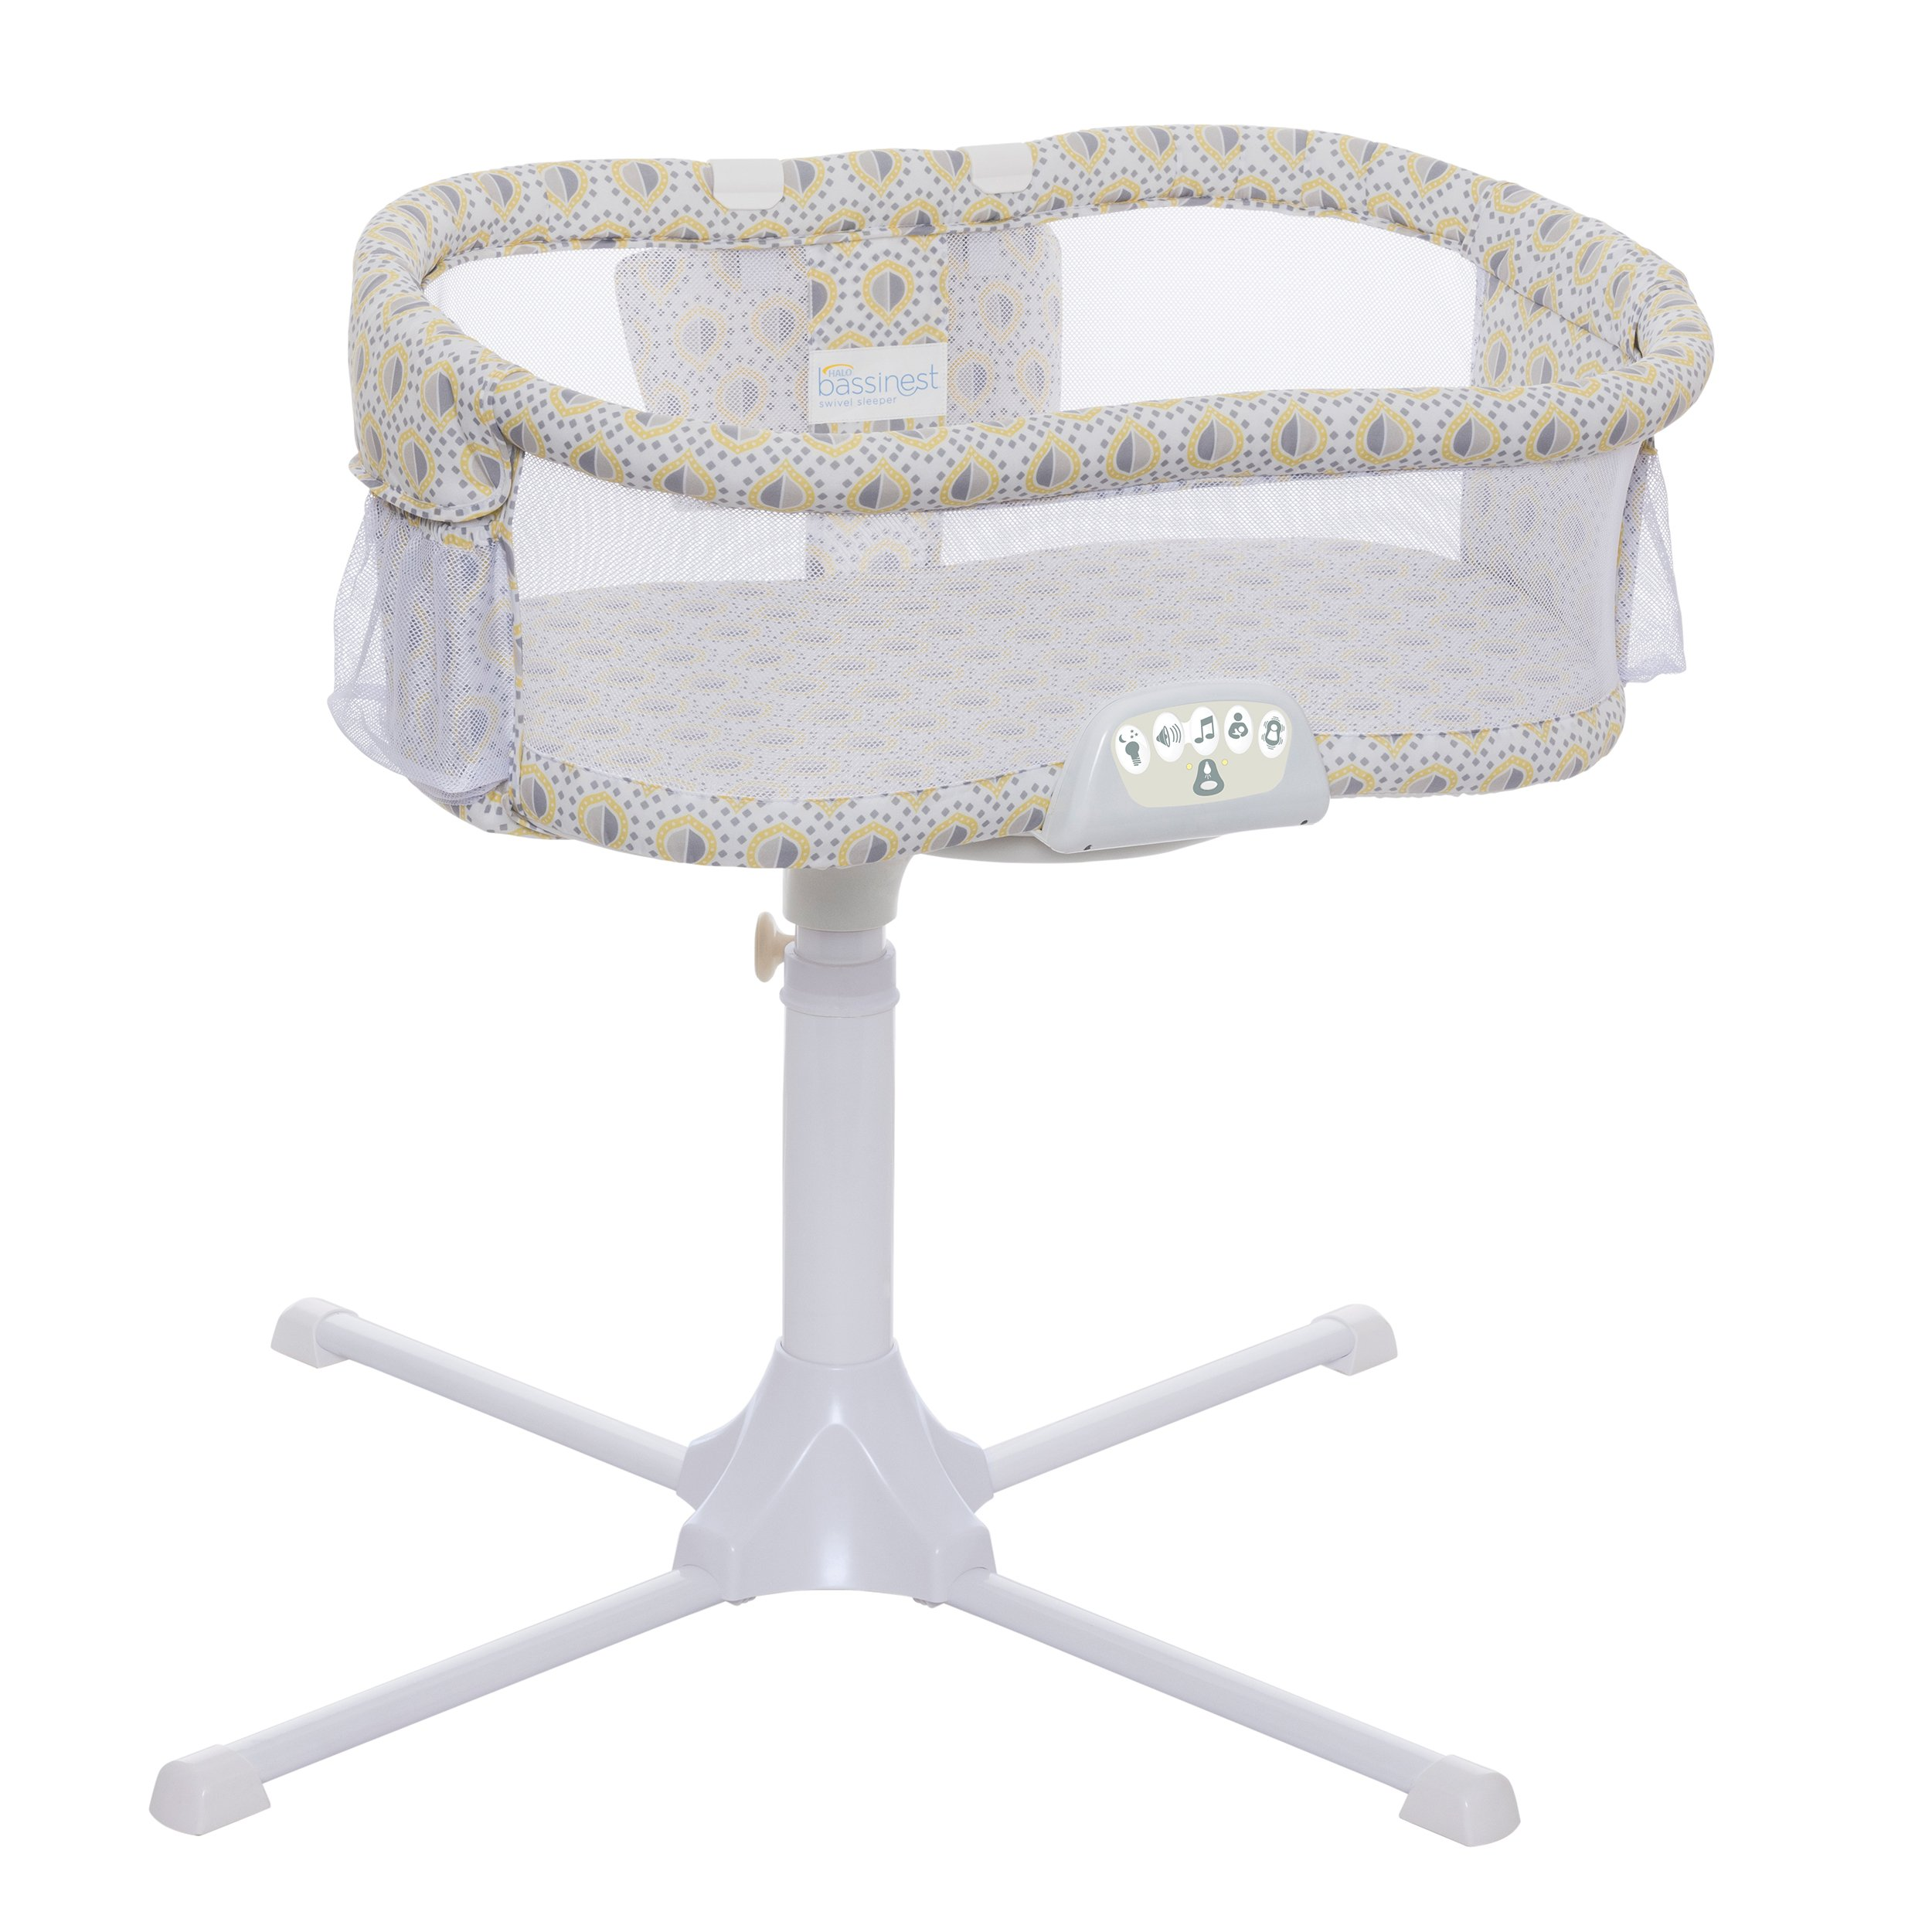 Halo Bassinest Swivel Sleeper Bassinet, Luxe Series, Lemon Drop